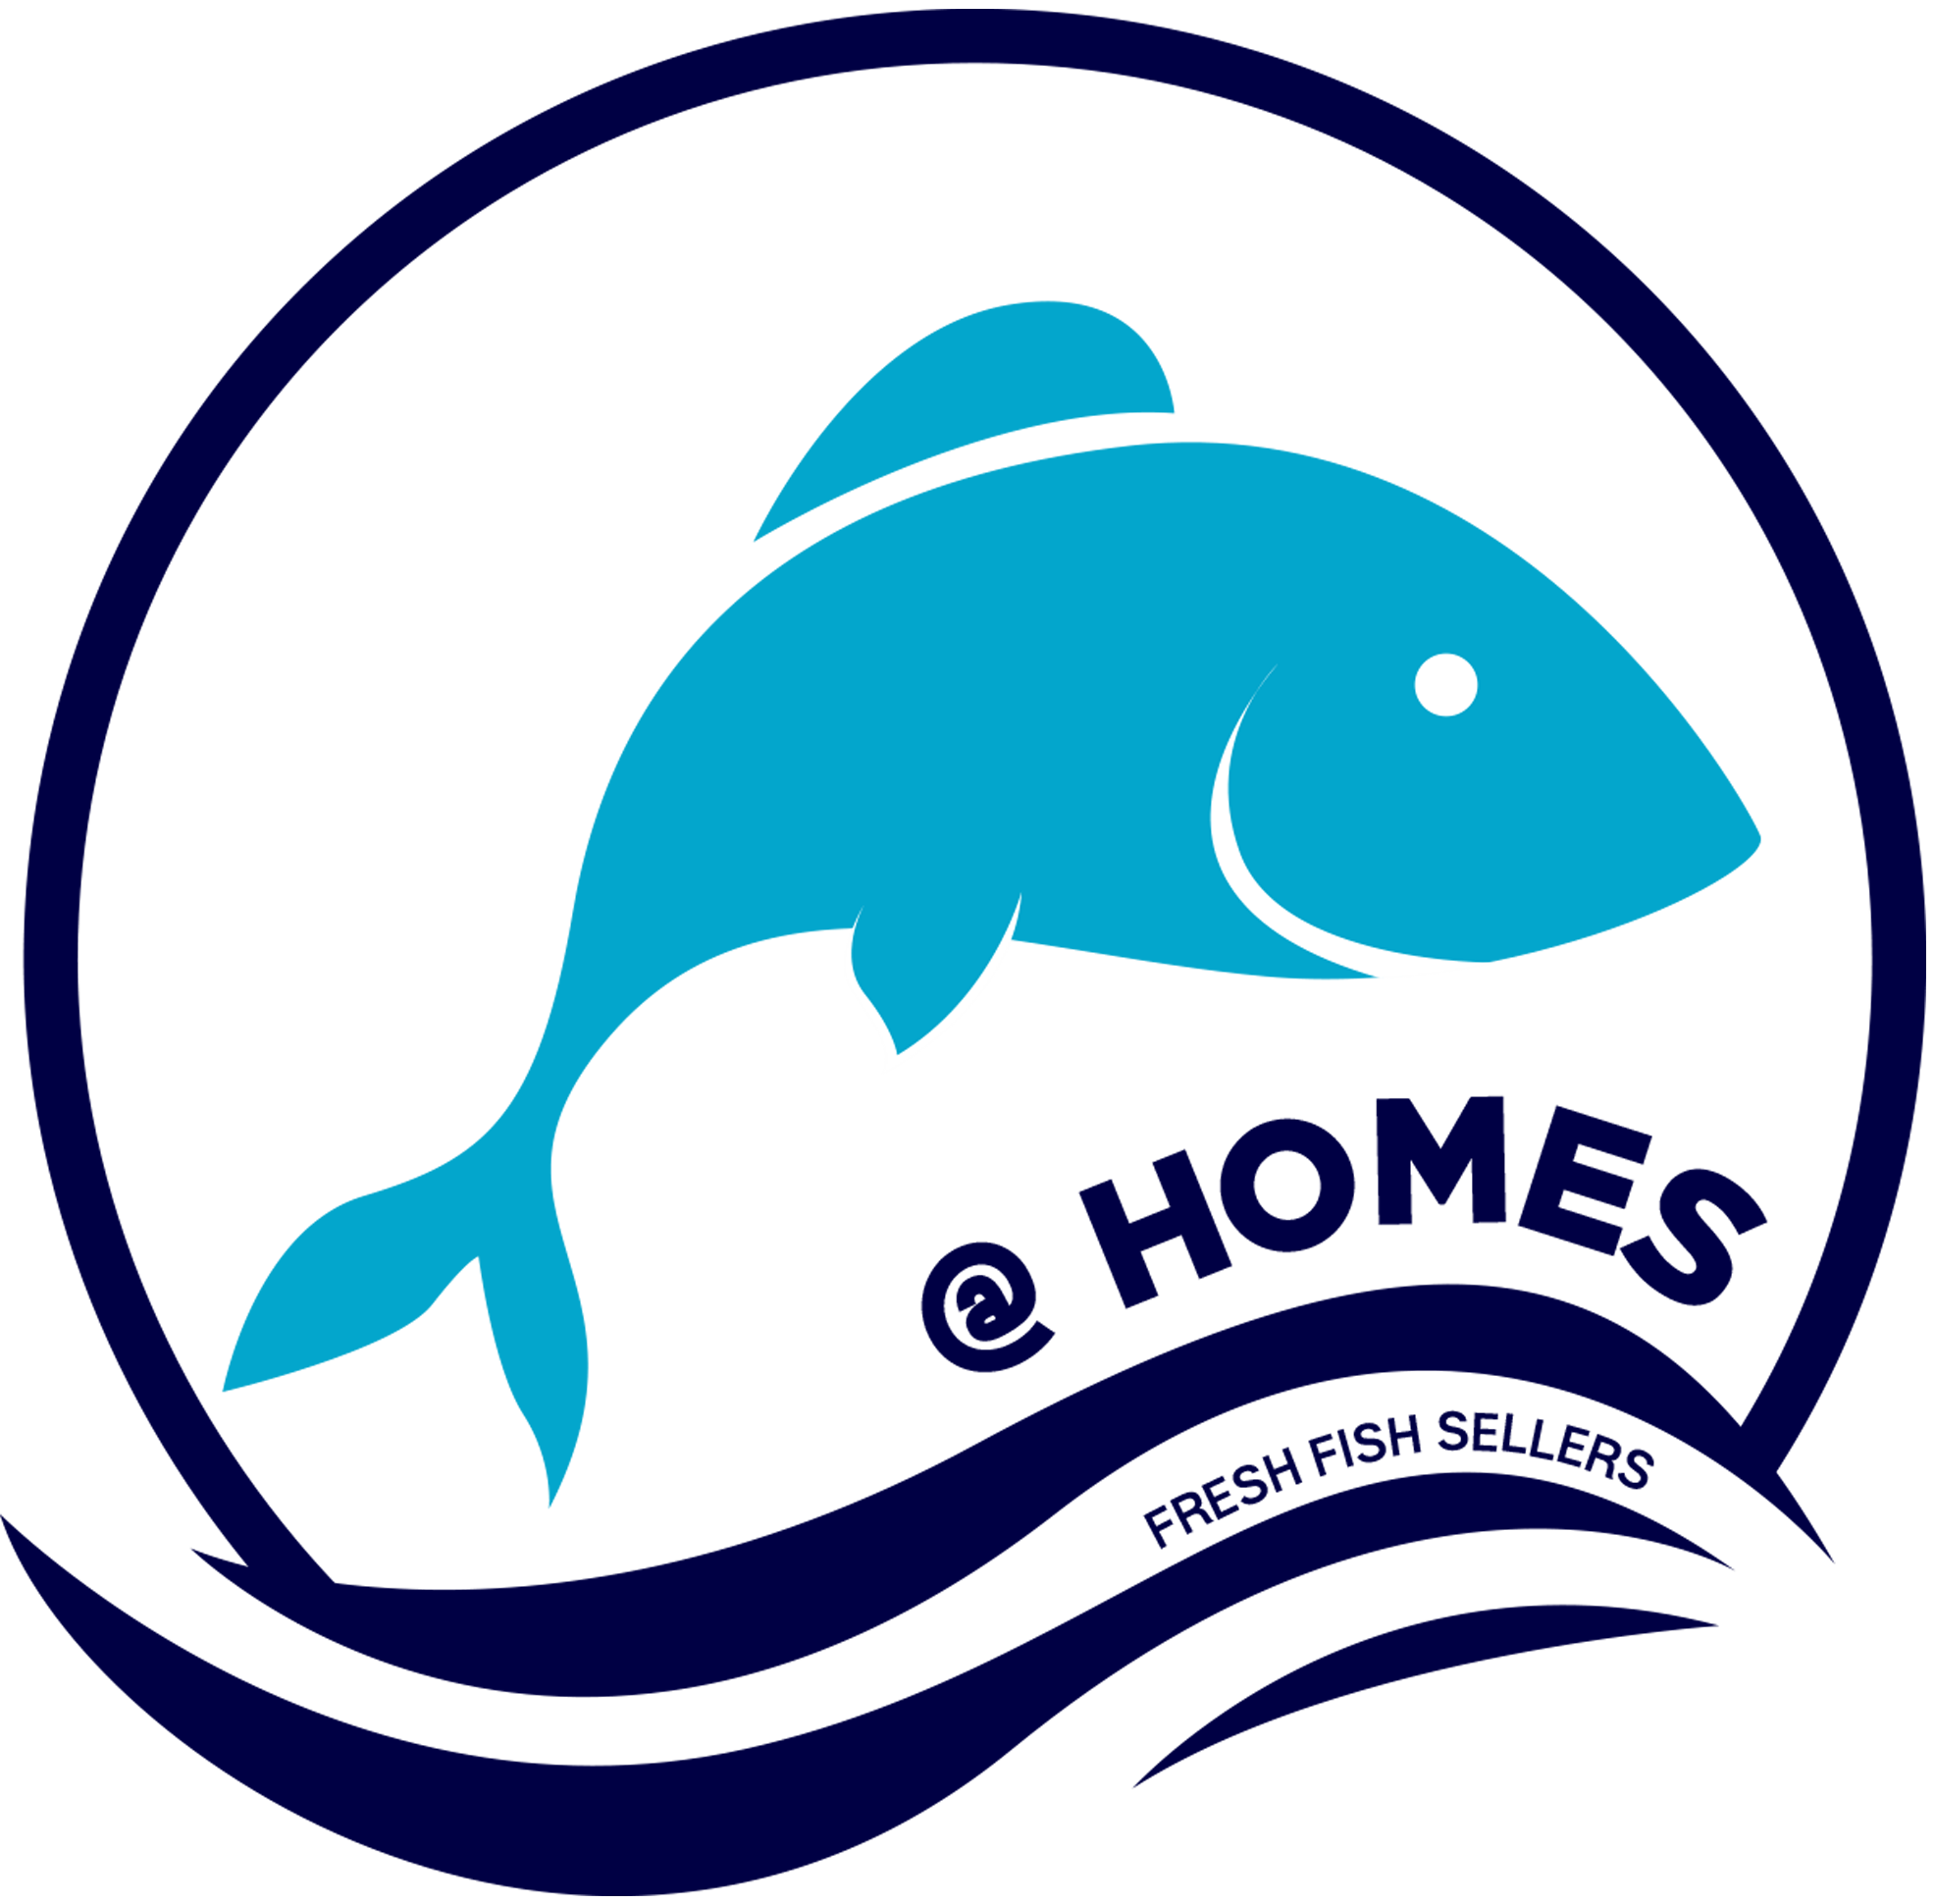 Homes home products fishhomes. Tuna clipart fresh fish